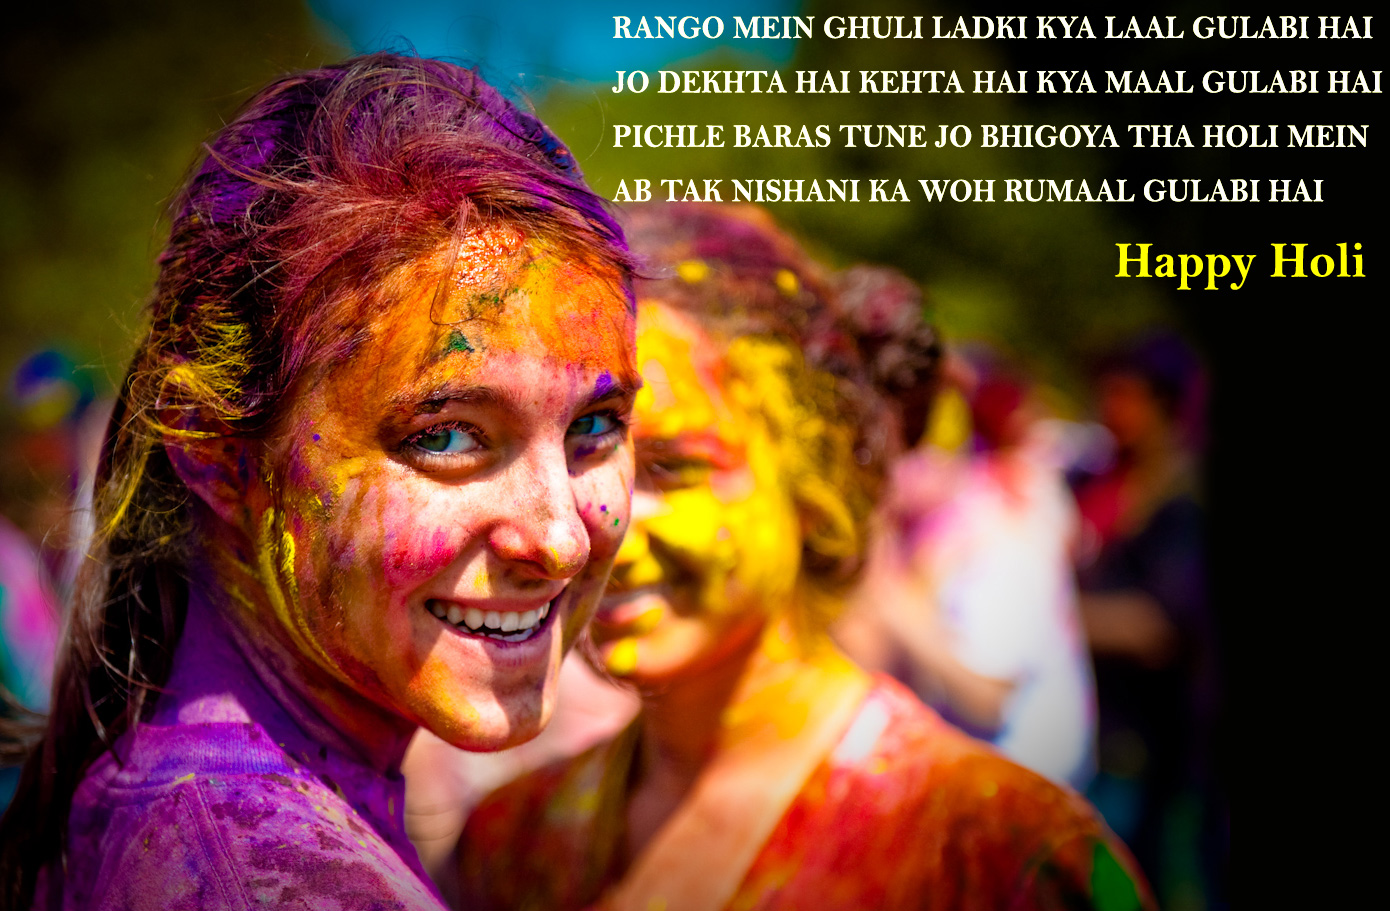 holi festival essay in marathi You can find here best holi information in marathi holi festival happy holi in marathi holi status in marathi skip to content holi festival essay in marathi.